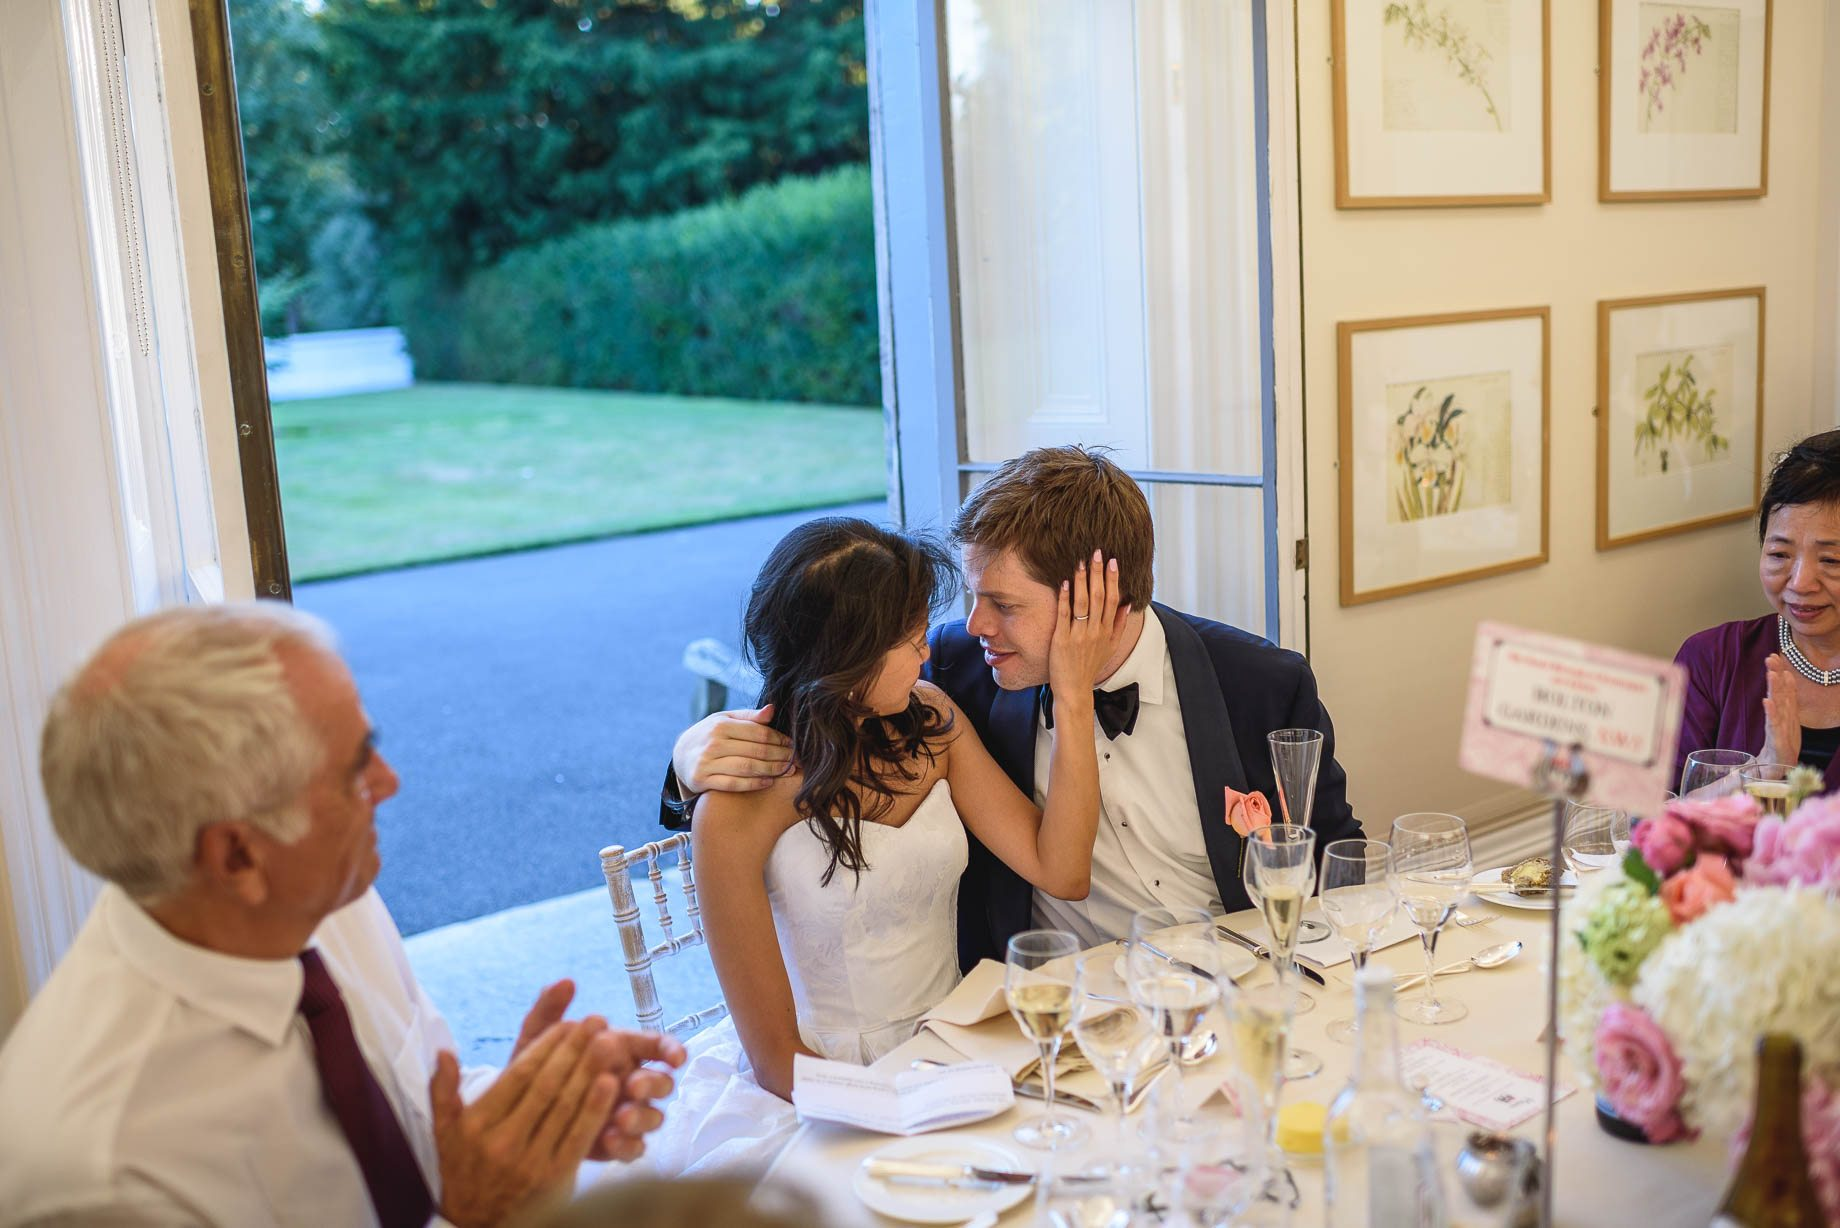 Kew Gardens wedding photography - Guy Collier Photography - Gloria and Frederik (132 of 173)